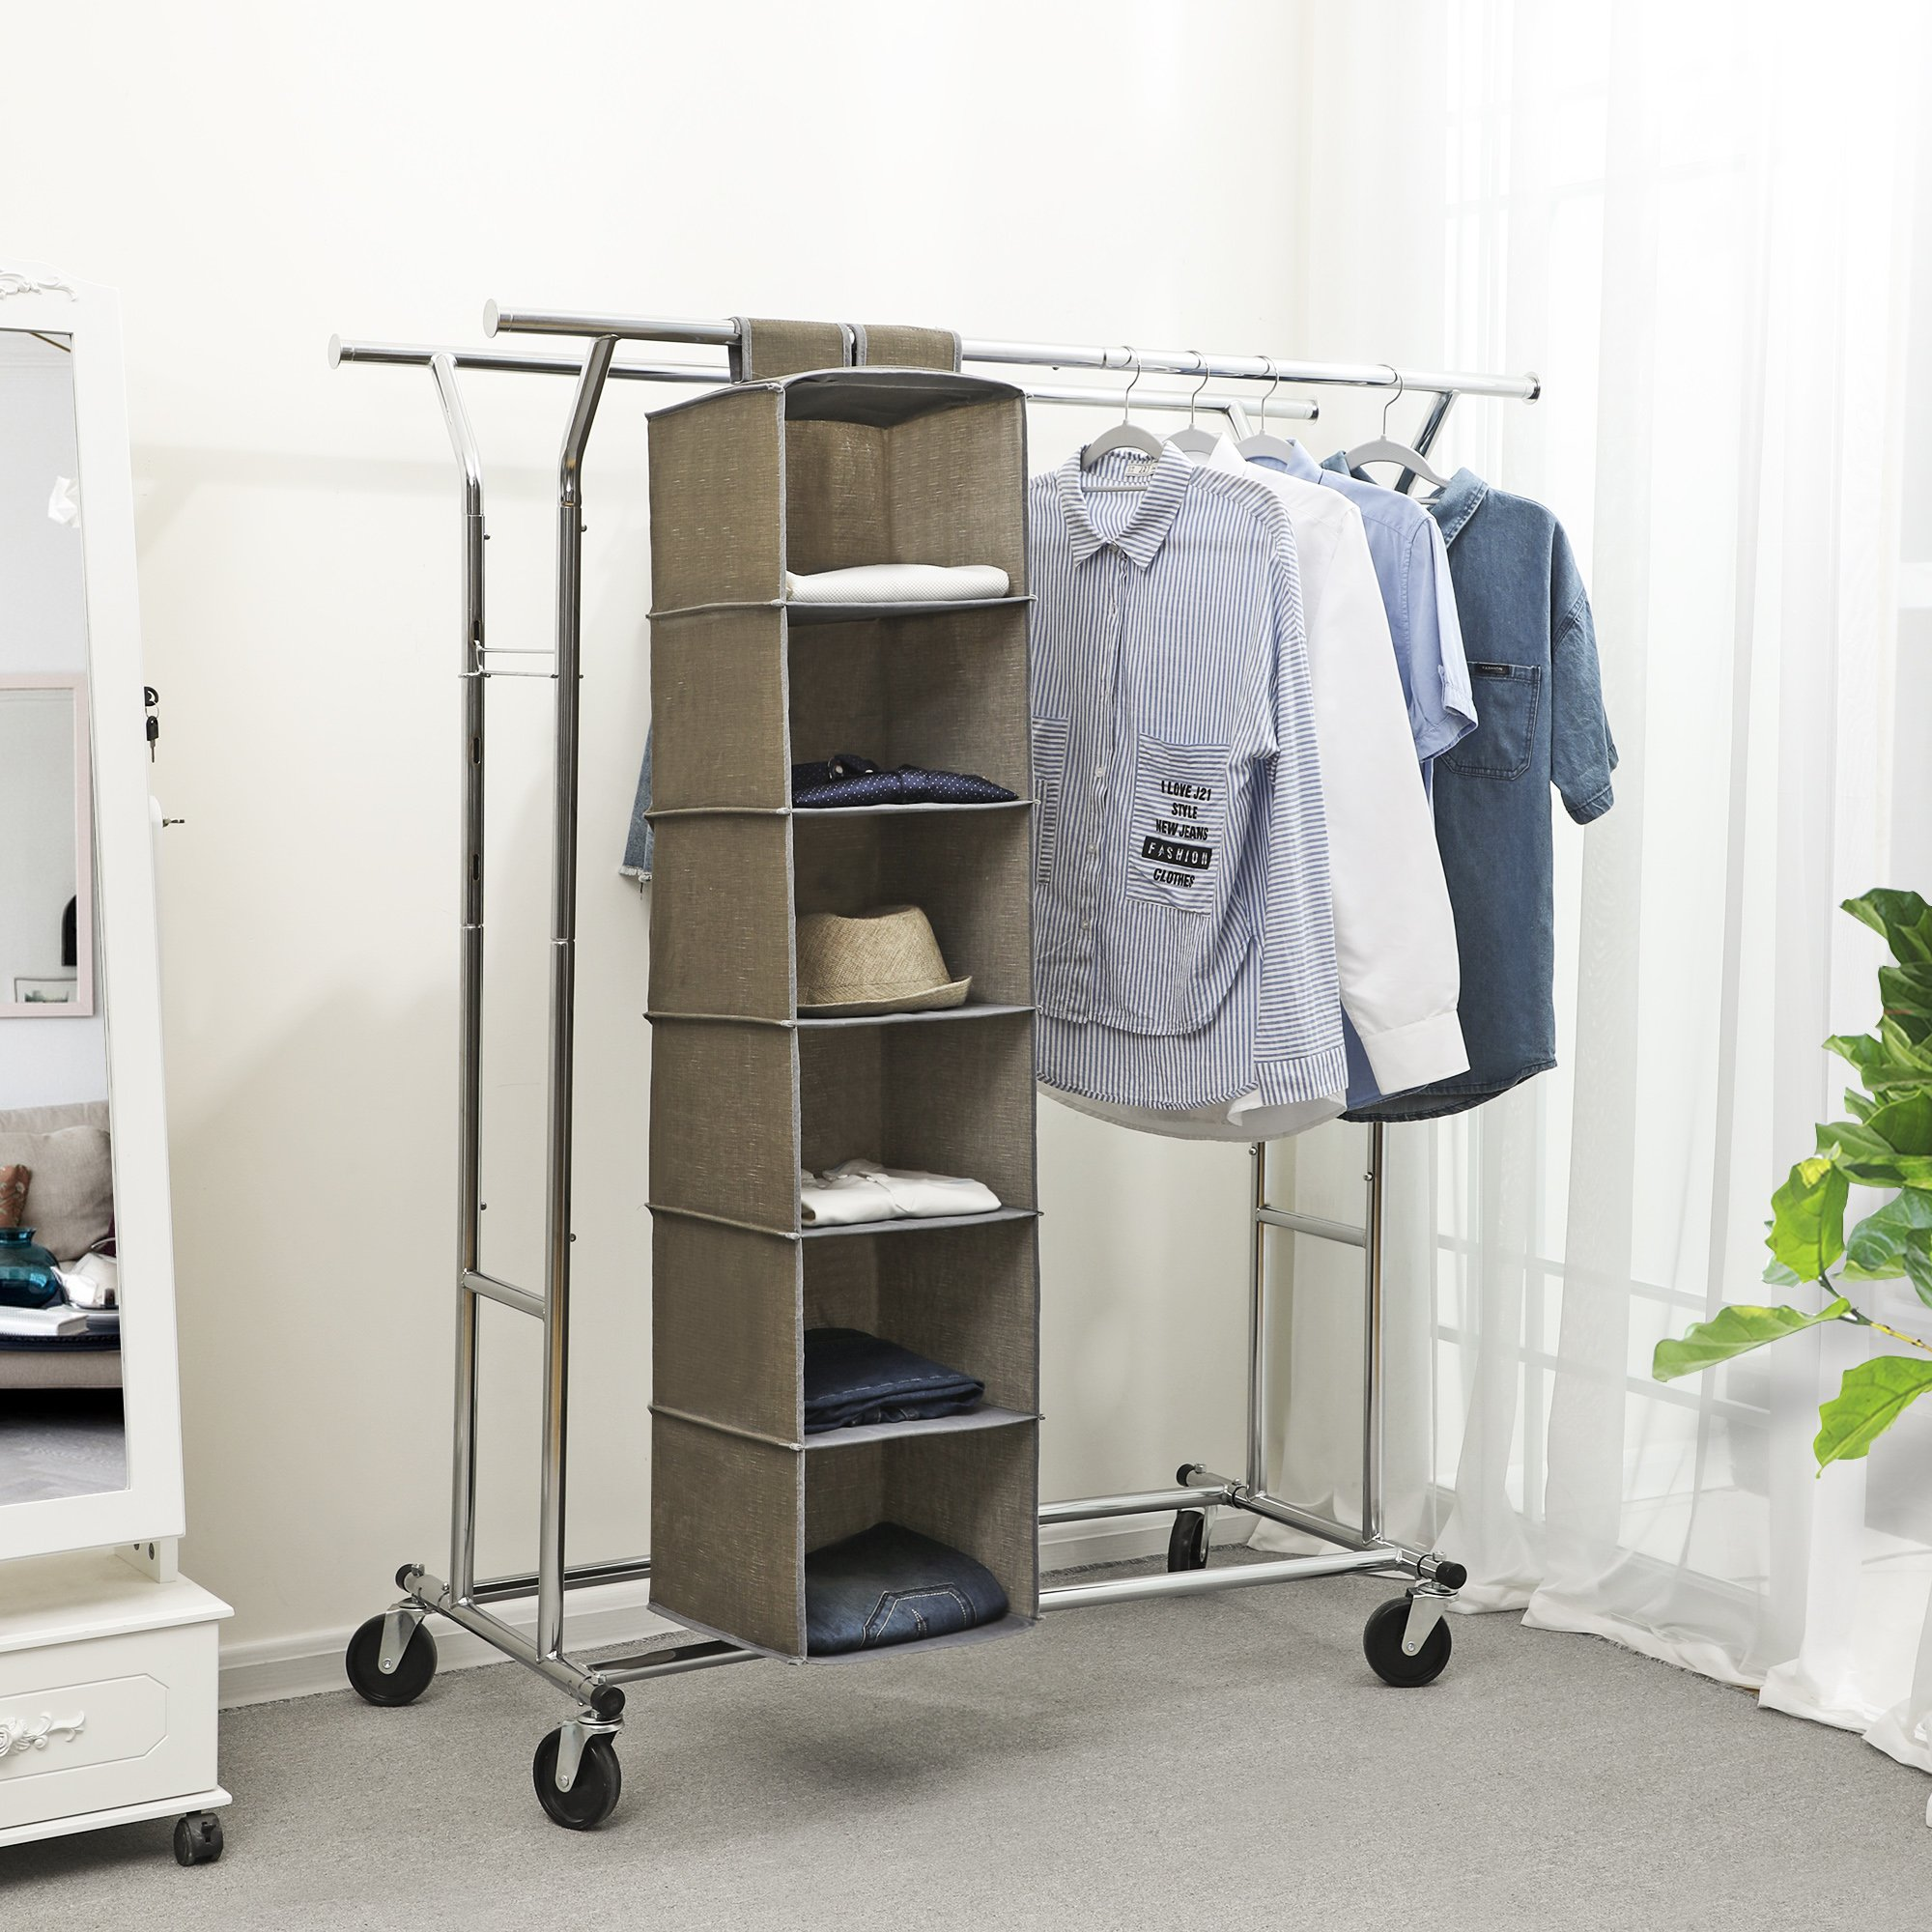 pin hanging open clothes temporary bedroom ideas marvelous garment rolling rack industrial wardrobe